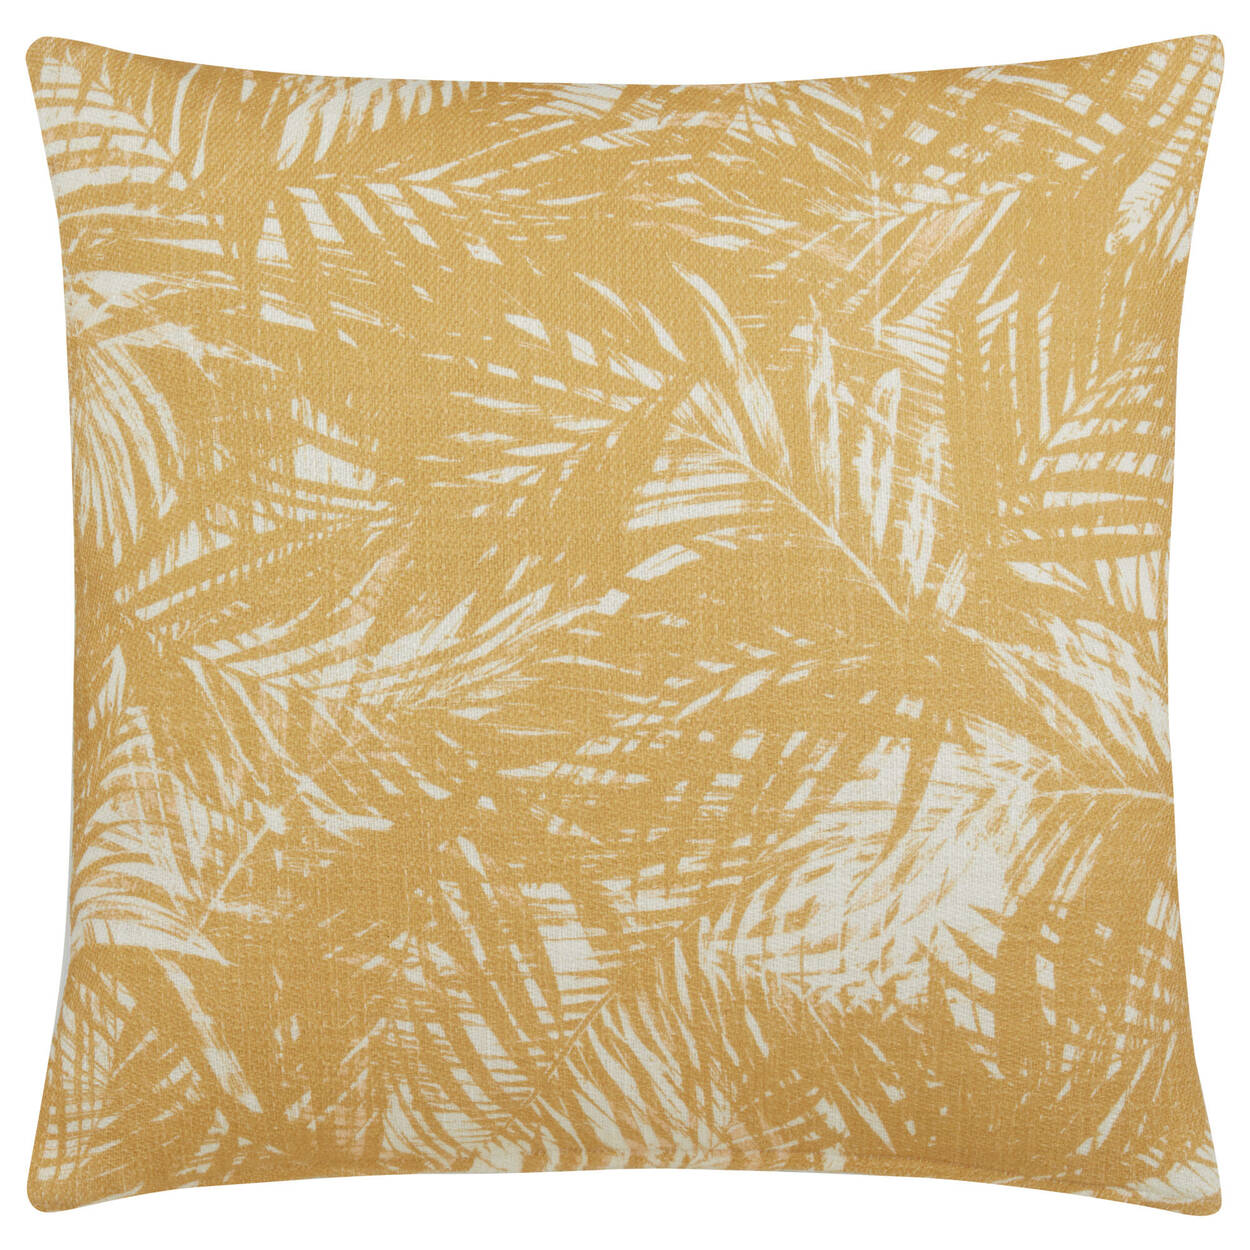 "Viori Decorative Pillow 19"" x 19"""